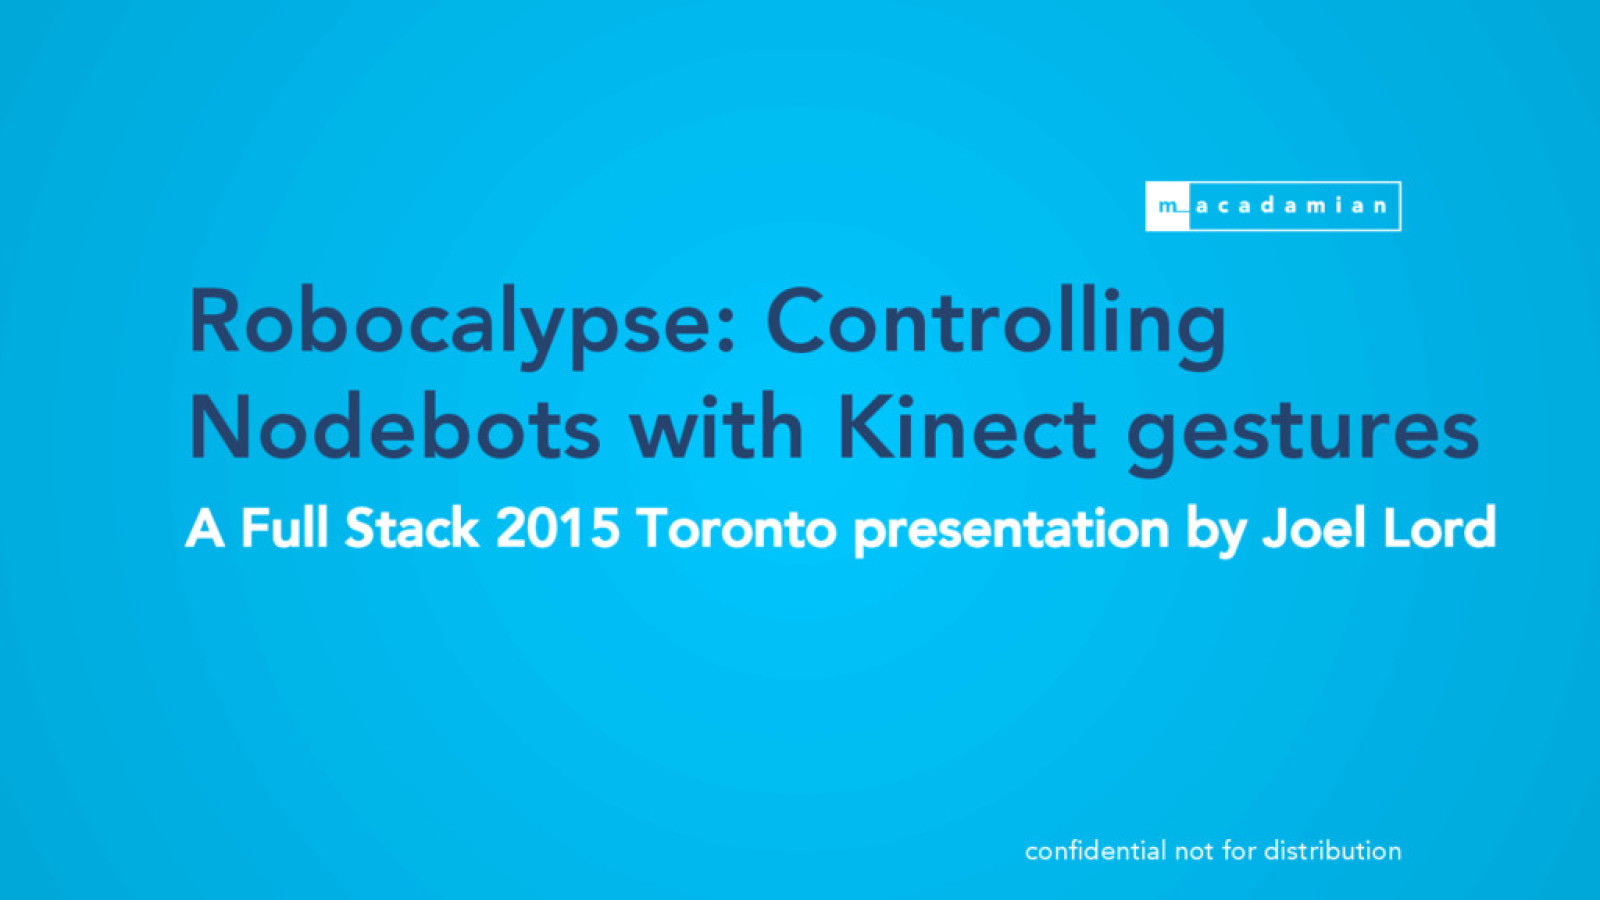 Robocalypse: Controlling robots with kinect gestures